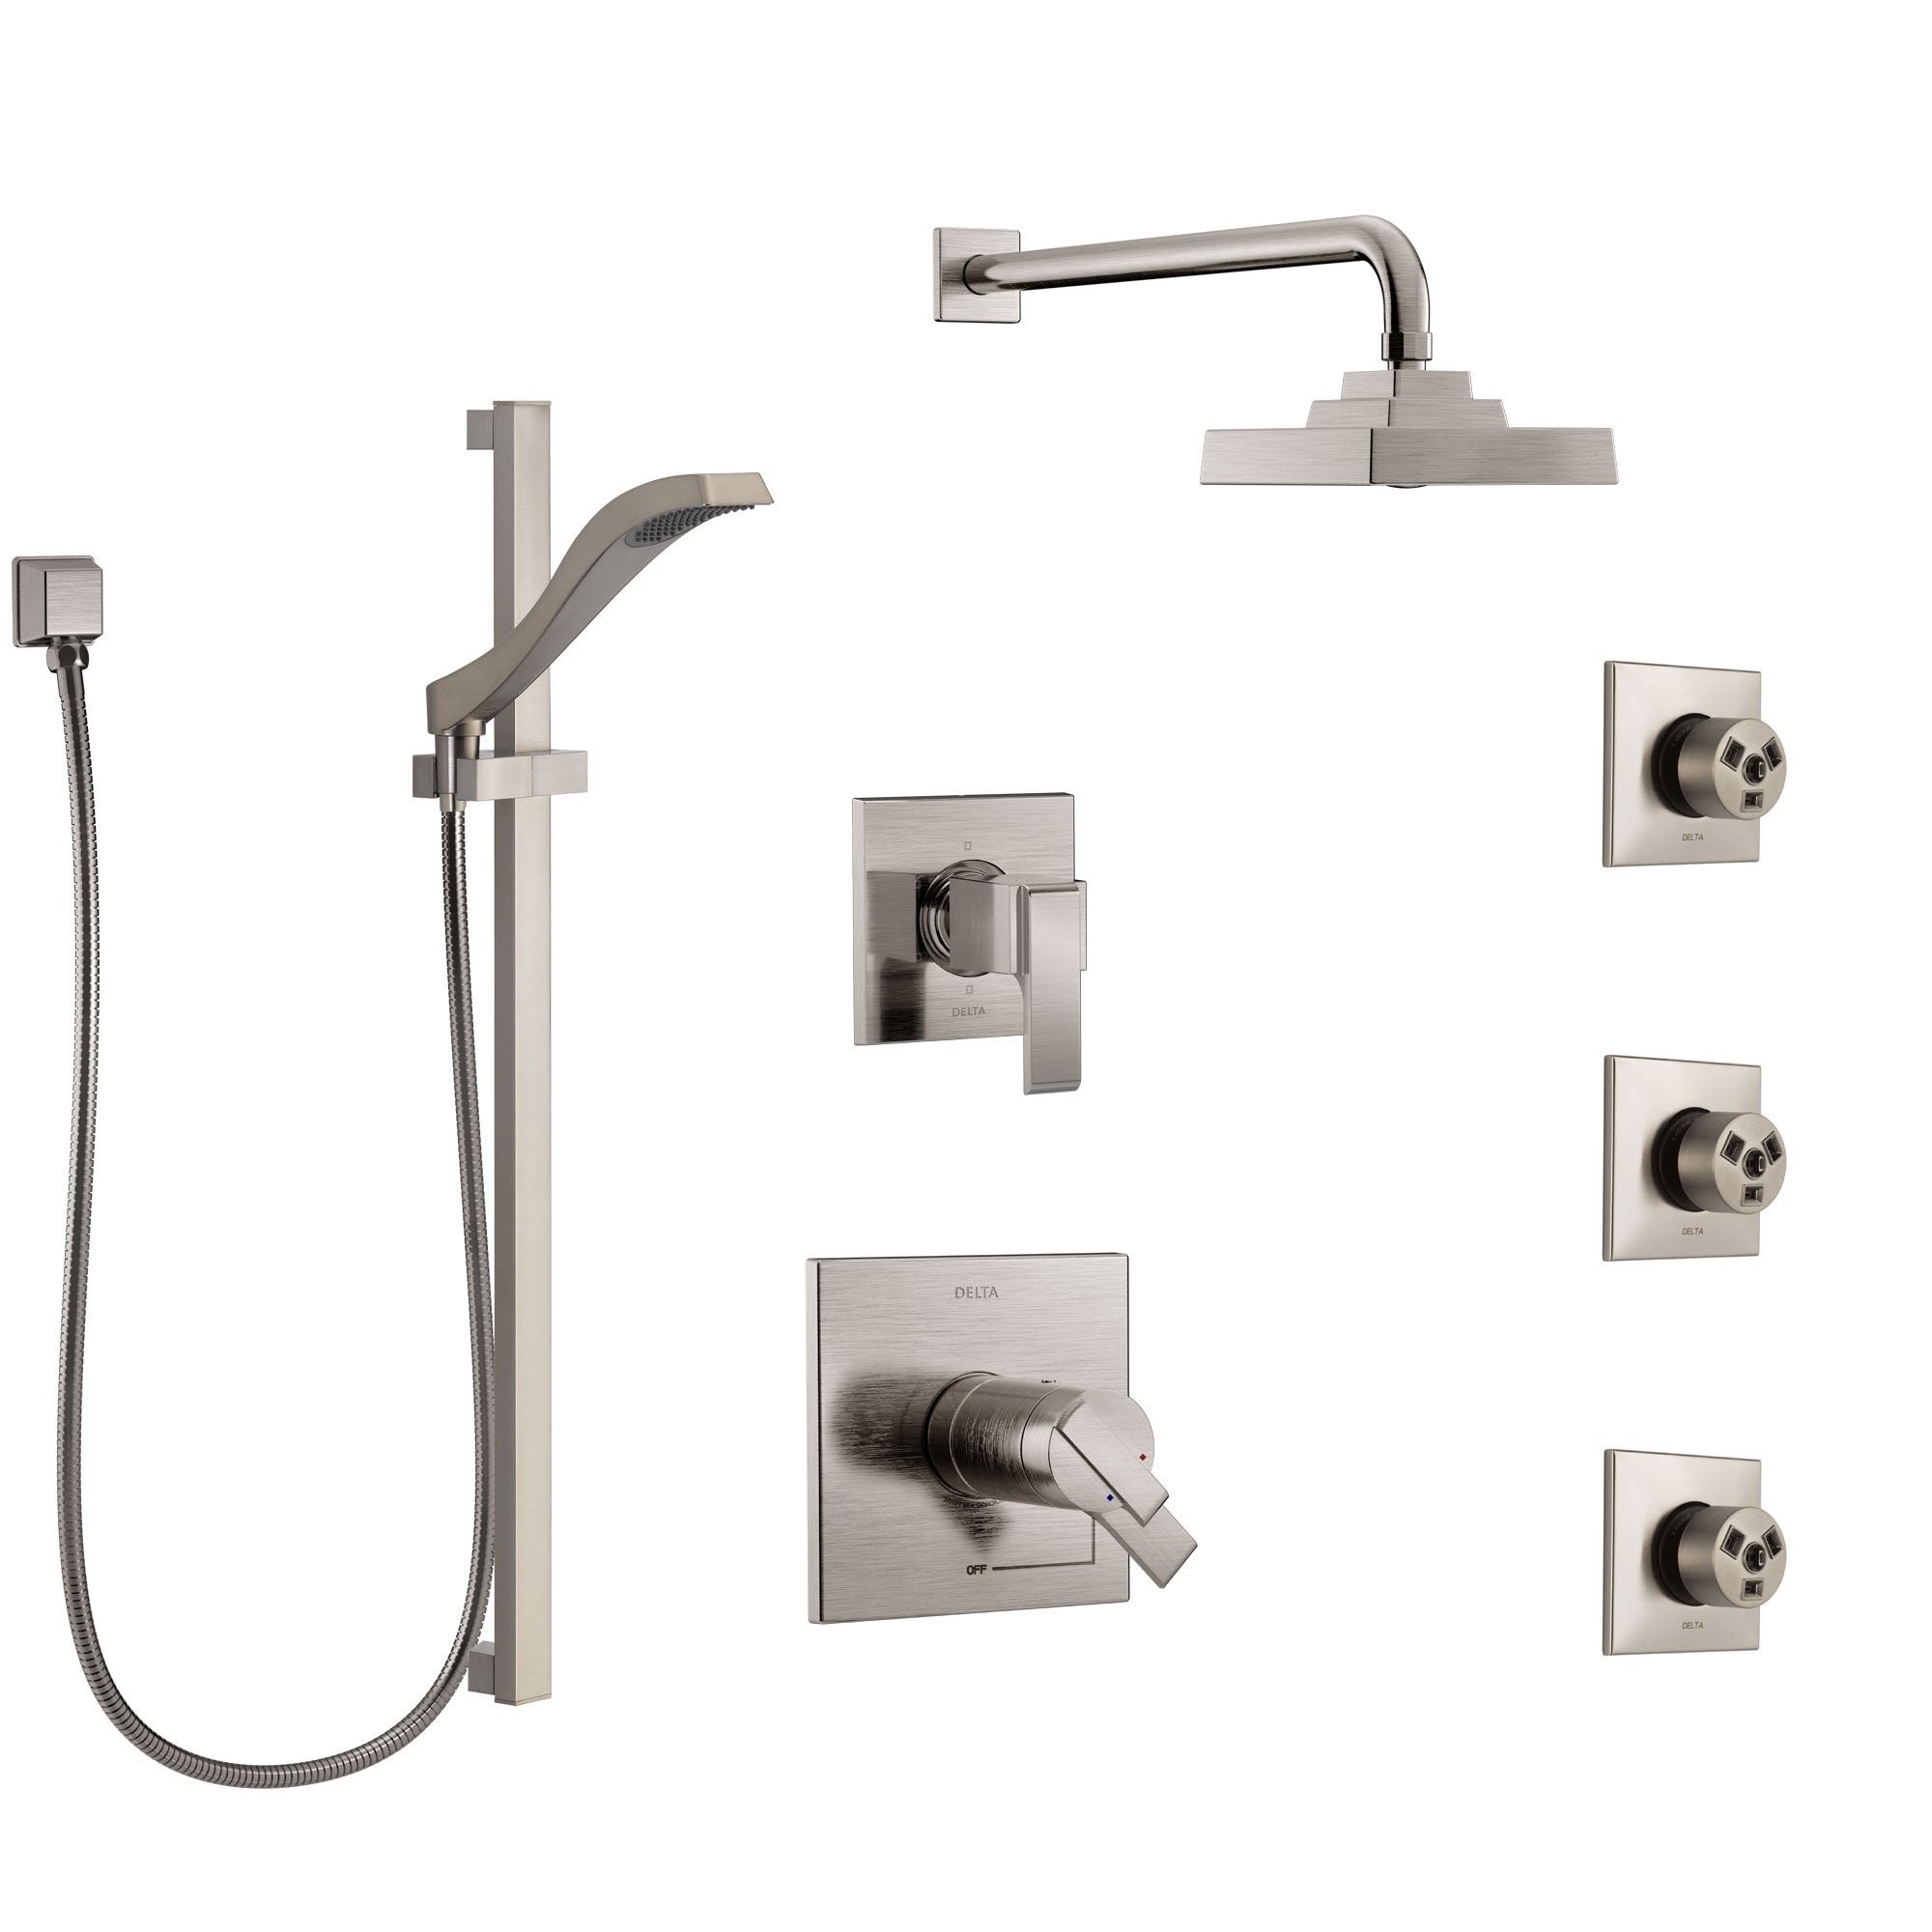 Delta Ara Dual Thermostatic Control Stainless Steel Finish Shower System, 6-Setting Diverter, Showerhead, 3 Body Sprays, and Hand Shower SS17T2671SS3